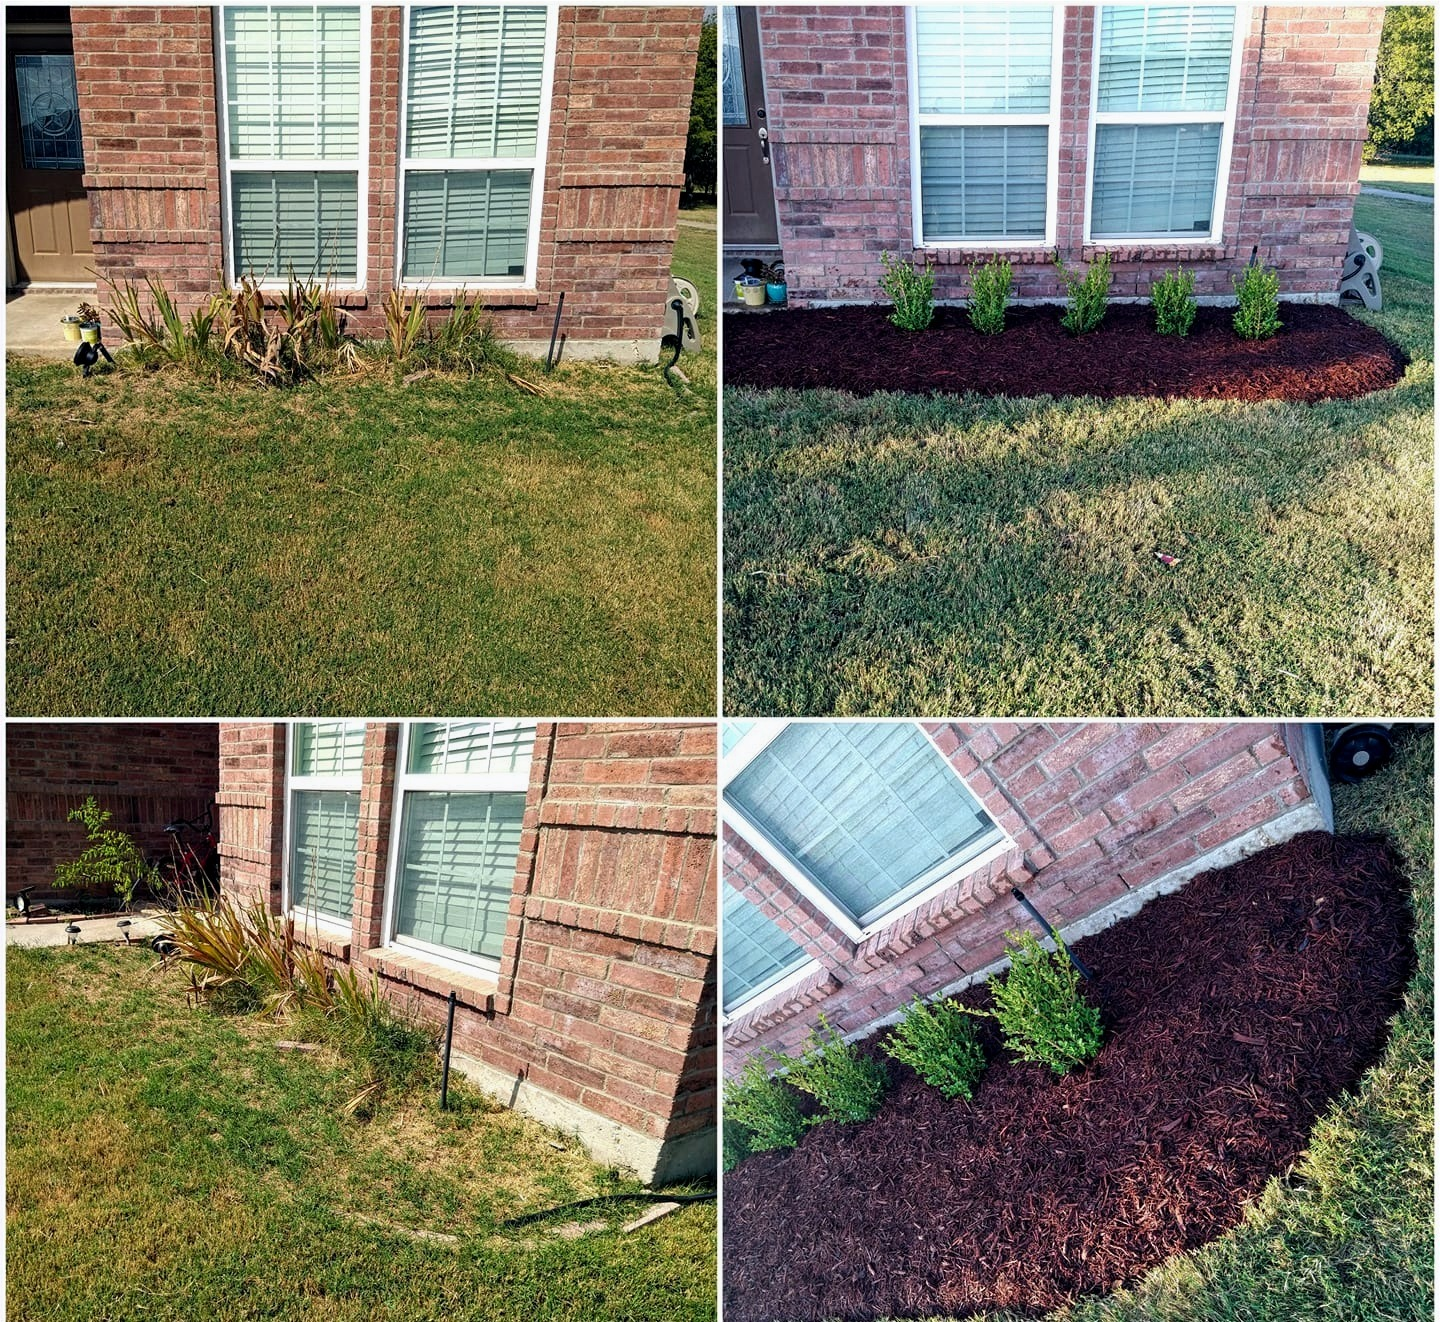 Flowerbed Install - Mulch & Boxwood Shrubs